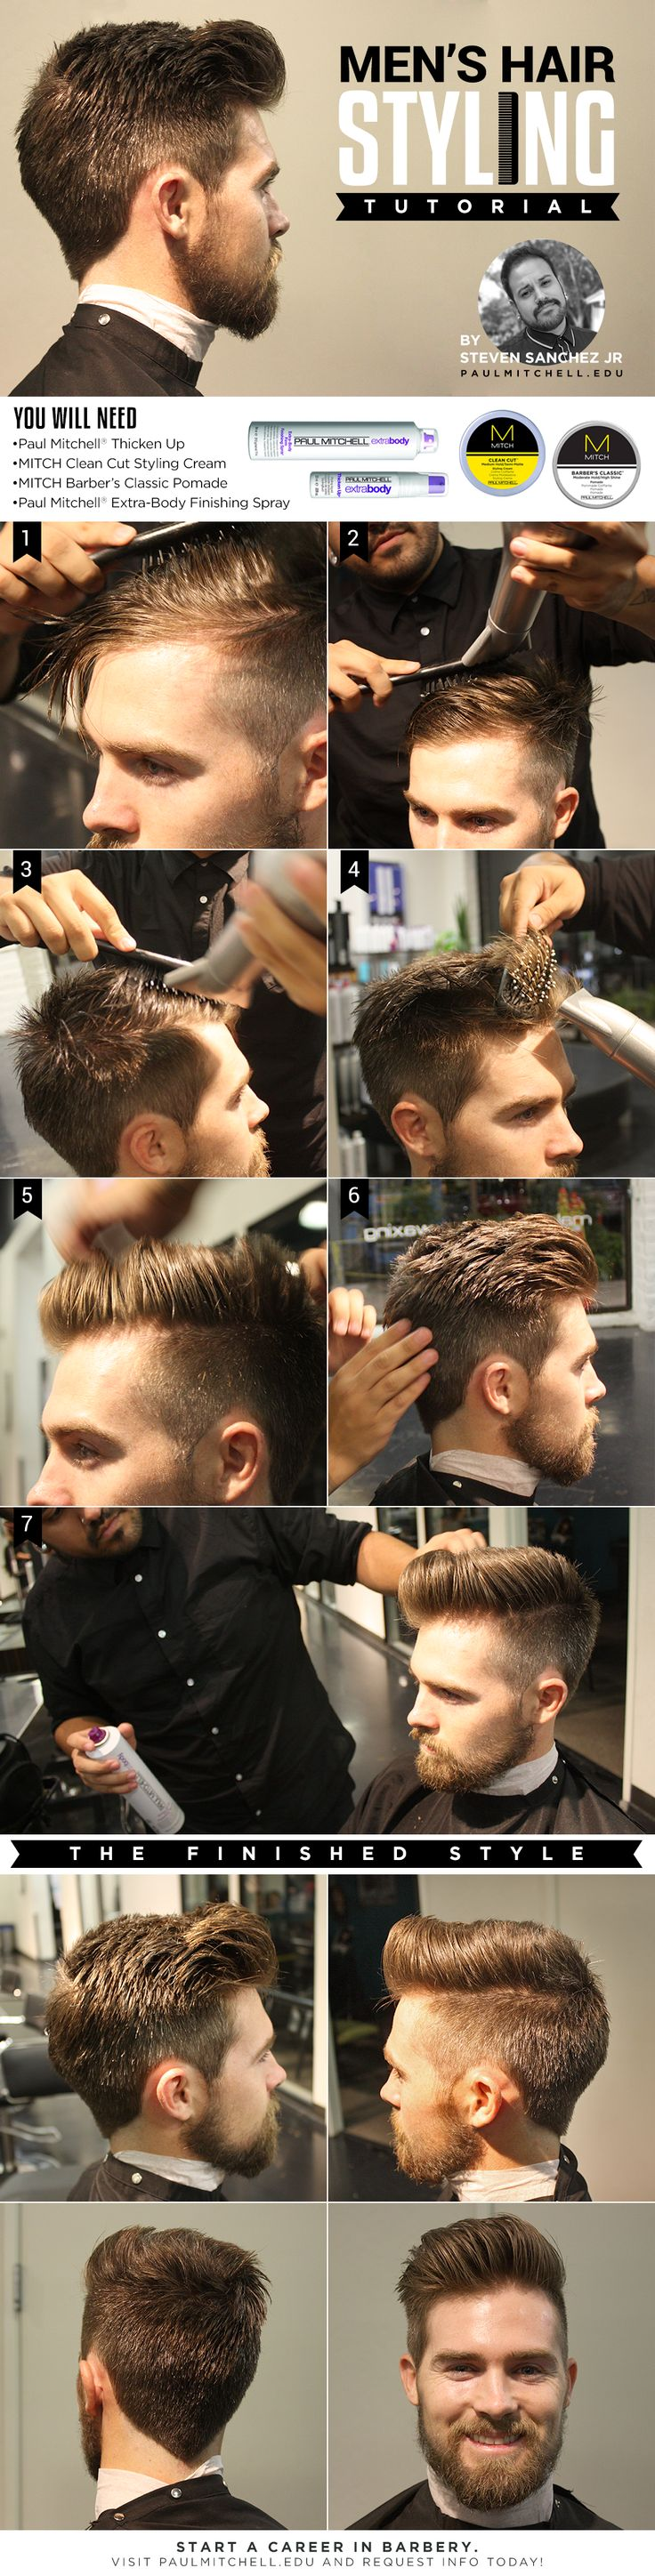 A Hair Styling Tutorial for the modern-day haircut.